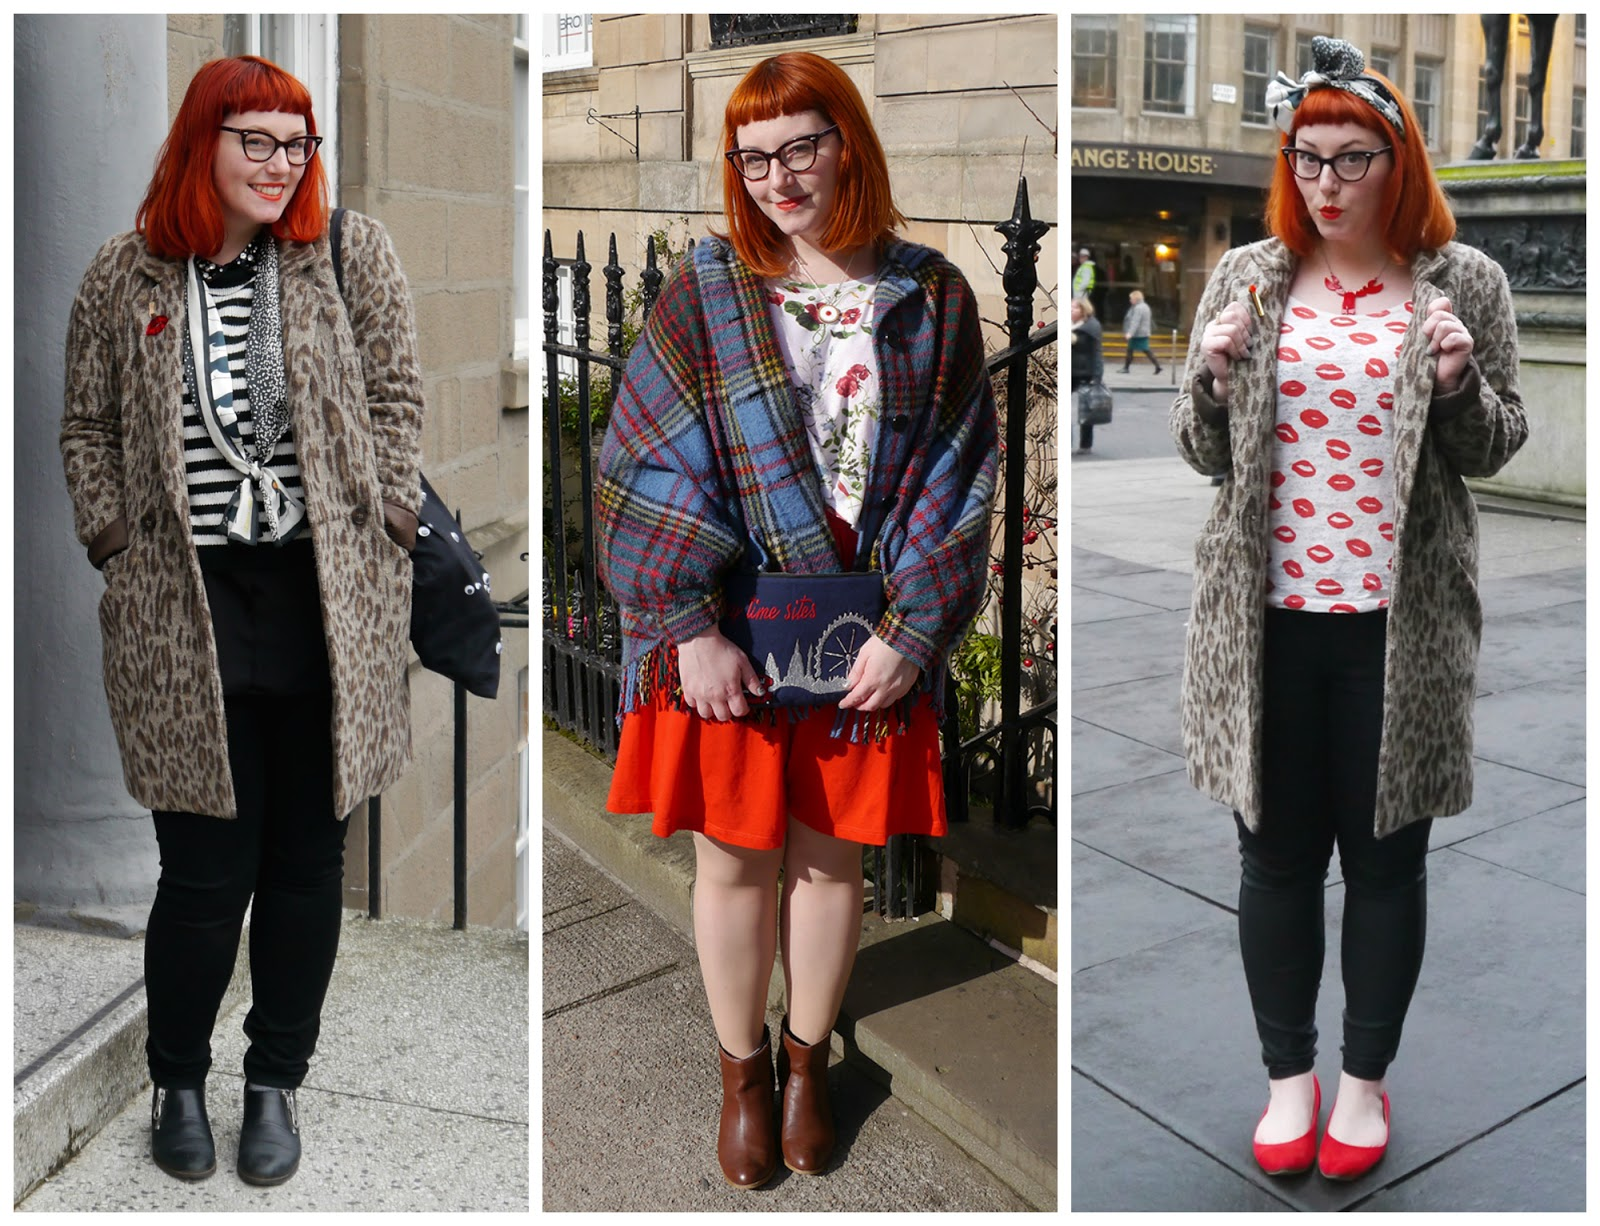 clashing prints, Scottish bloggers, 2015 round up, outfits of 2015, blogger style 2015, red head, ginger, vintage style glasses, leopard print coat, striped jumper, Karen Mabon scarf, penguin scarf, googly eye bag, lip print top, head scarf, scarf bow, Tatty Devine lobster necklace, tartan cape, vintage cape, scottish vintage style, Sugar and Vice necklace